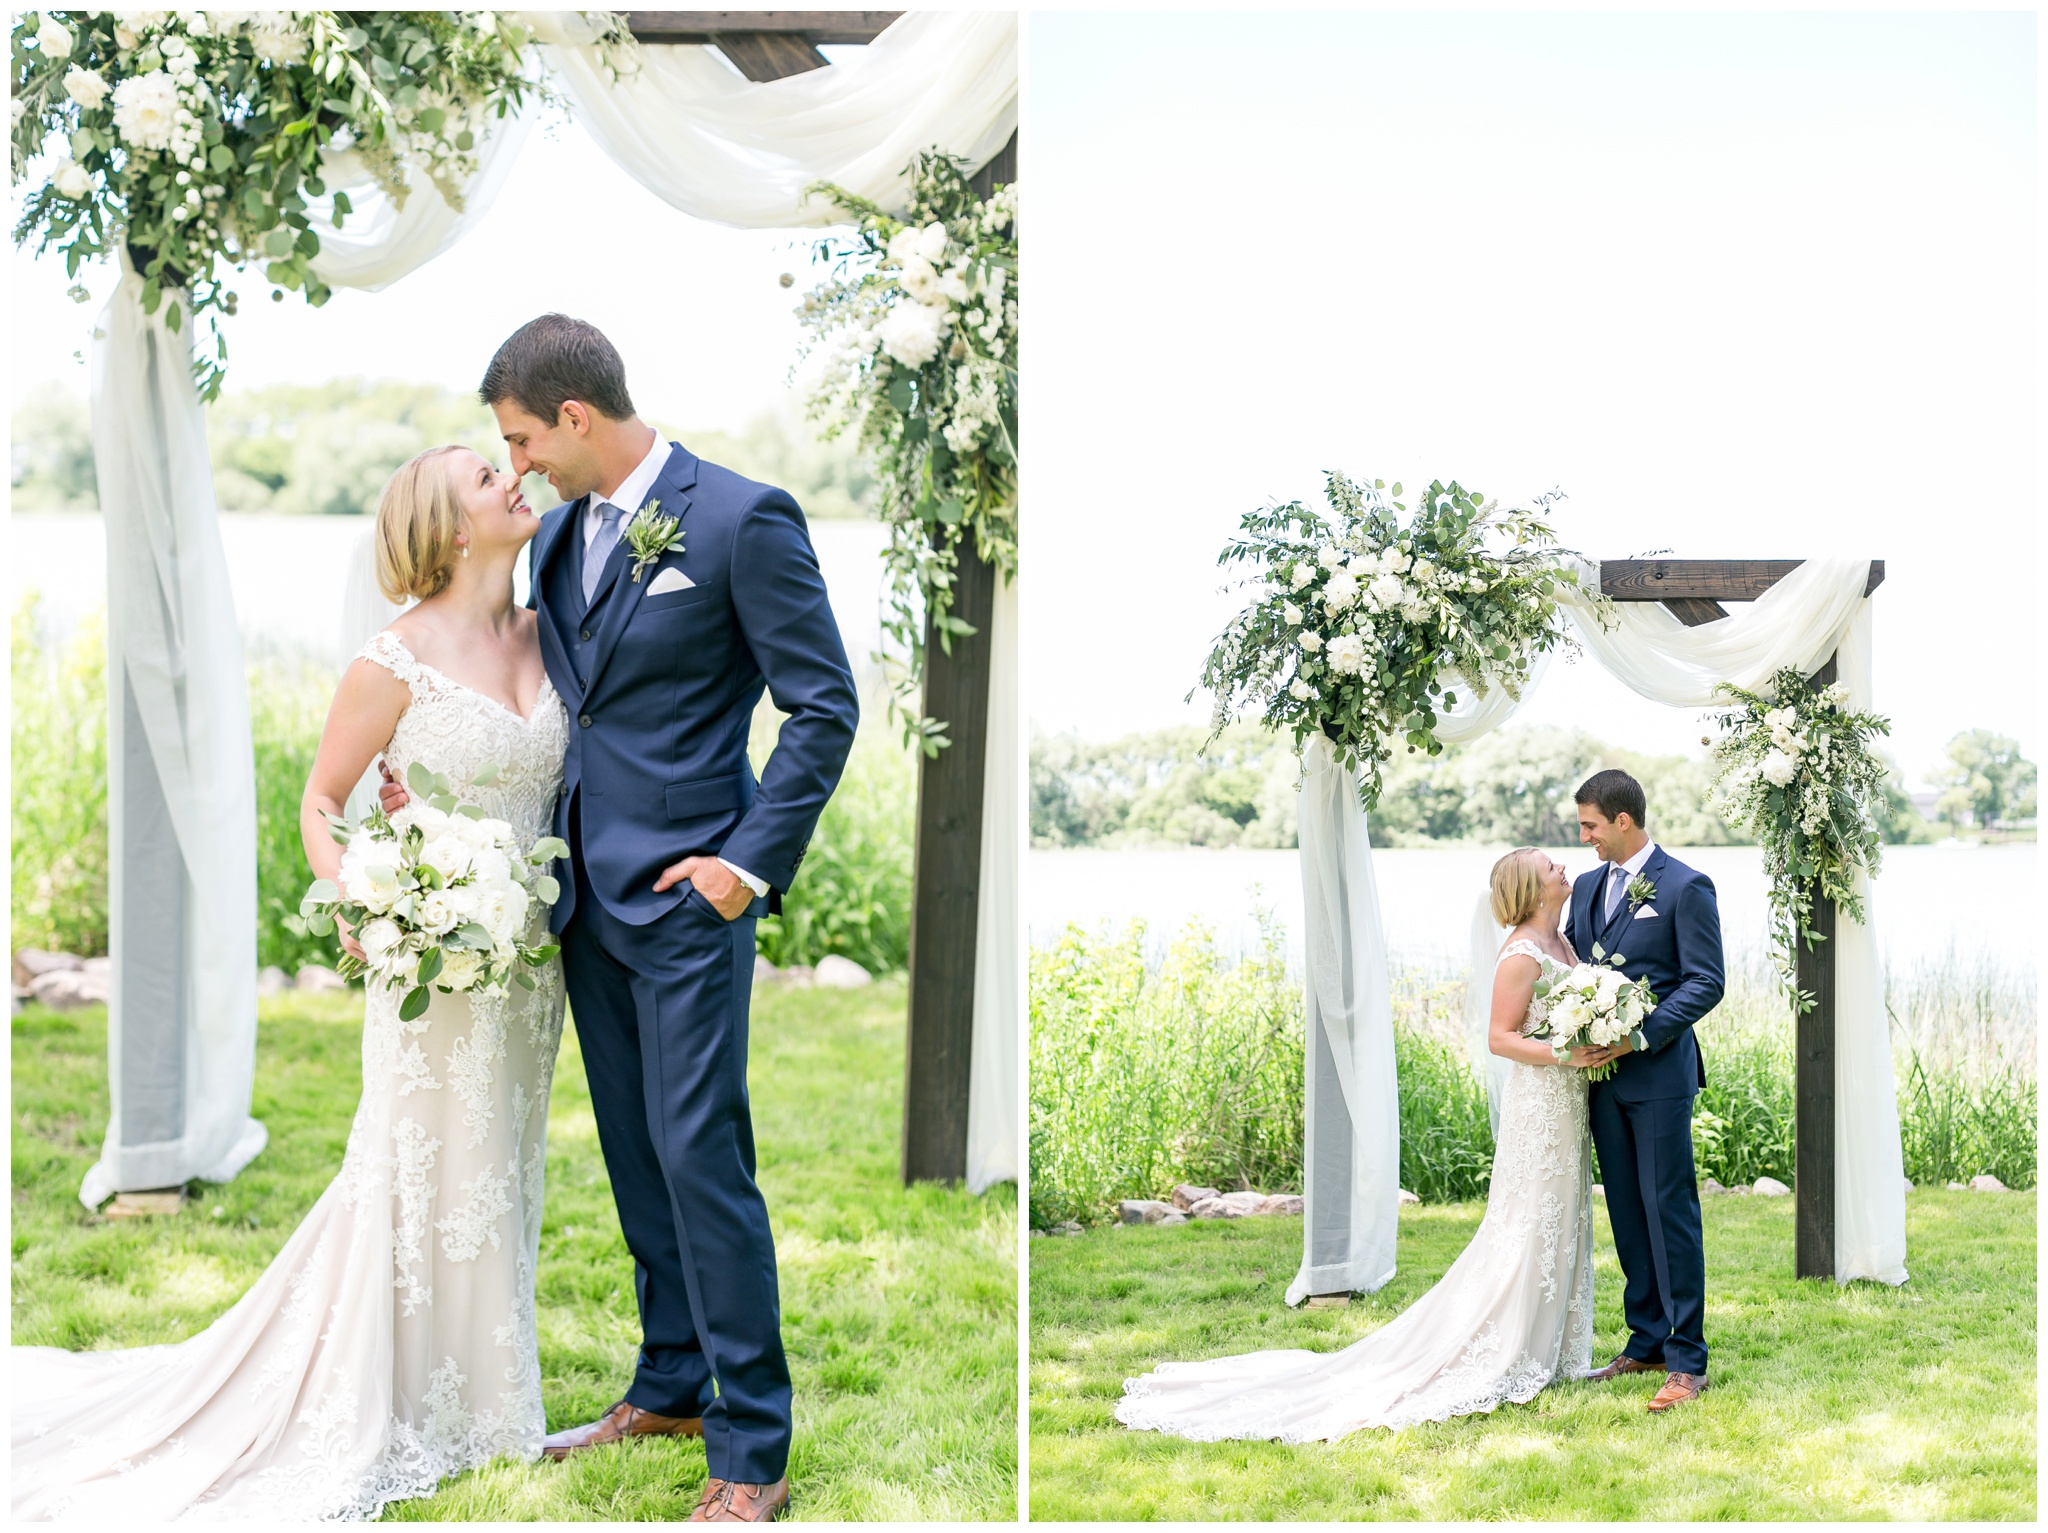 private_estate_wedding_stoughton_wisconsin_wedding_caynay_photo_3847.jpg